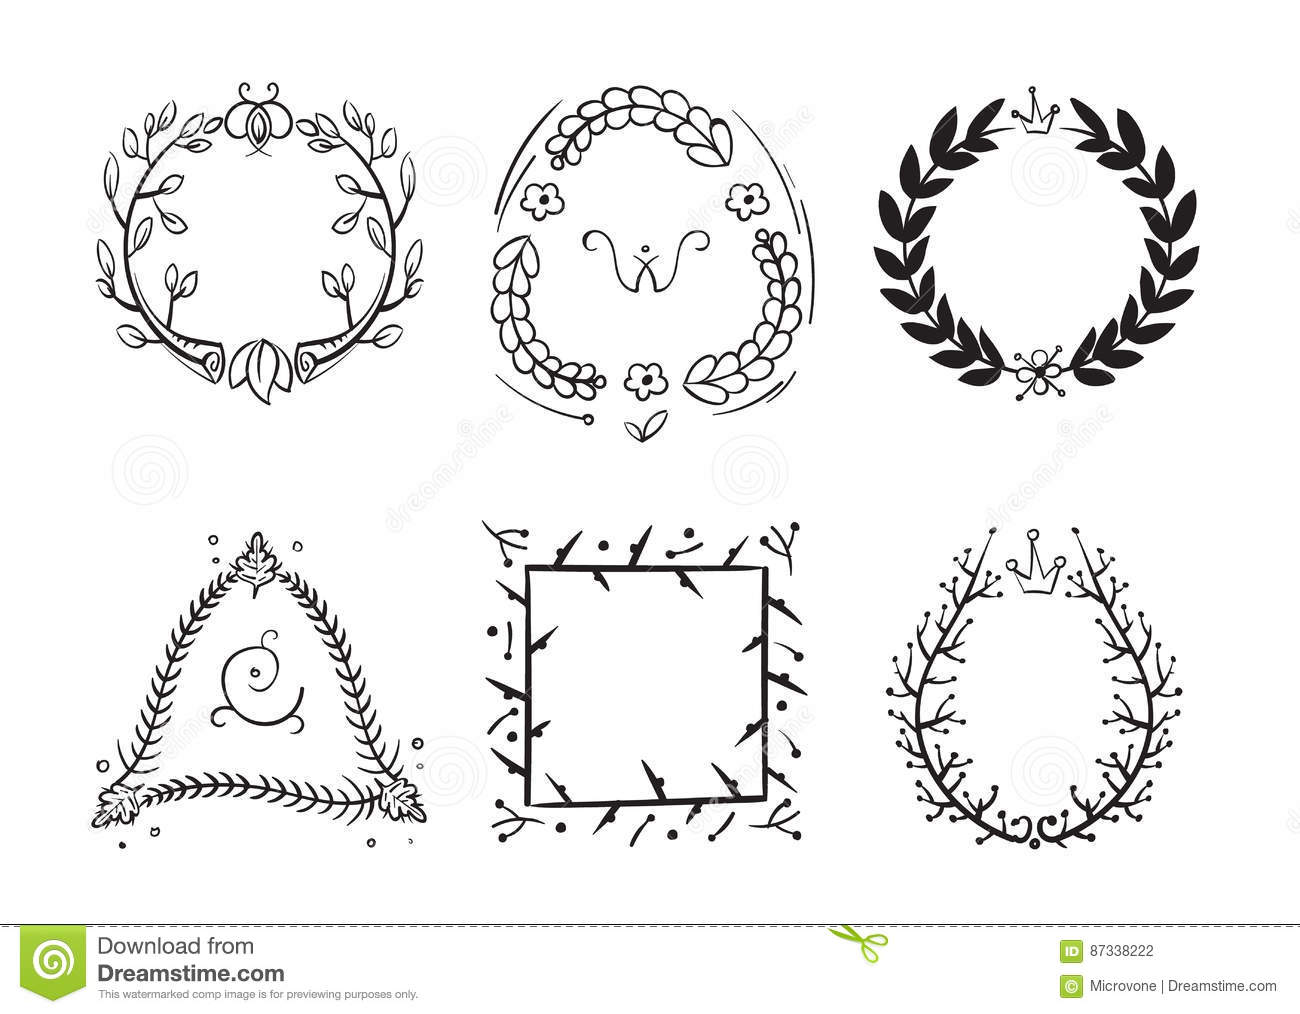 Doodle Rustic Branch Frames Vector Hand Drawn Nature Swirl Tree